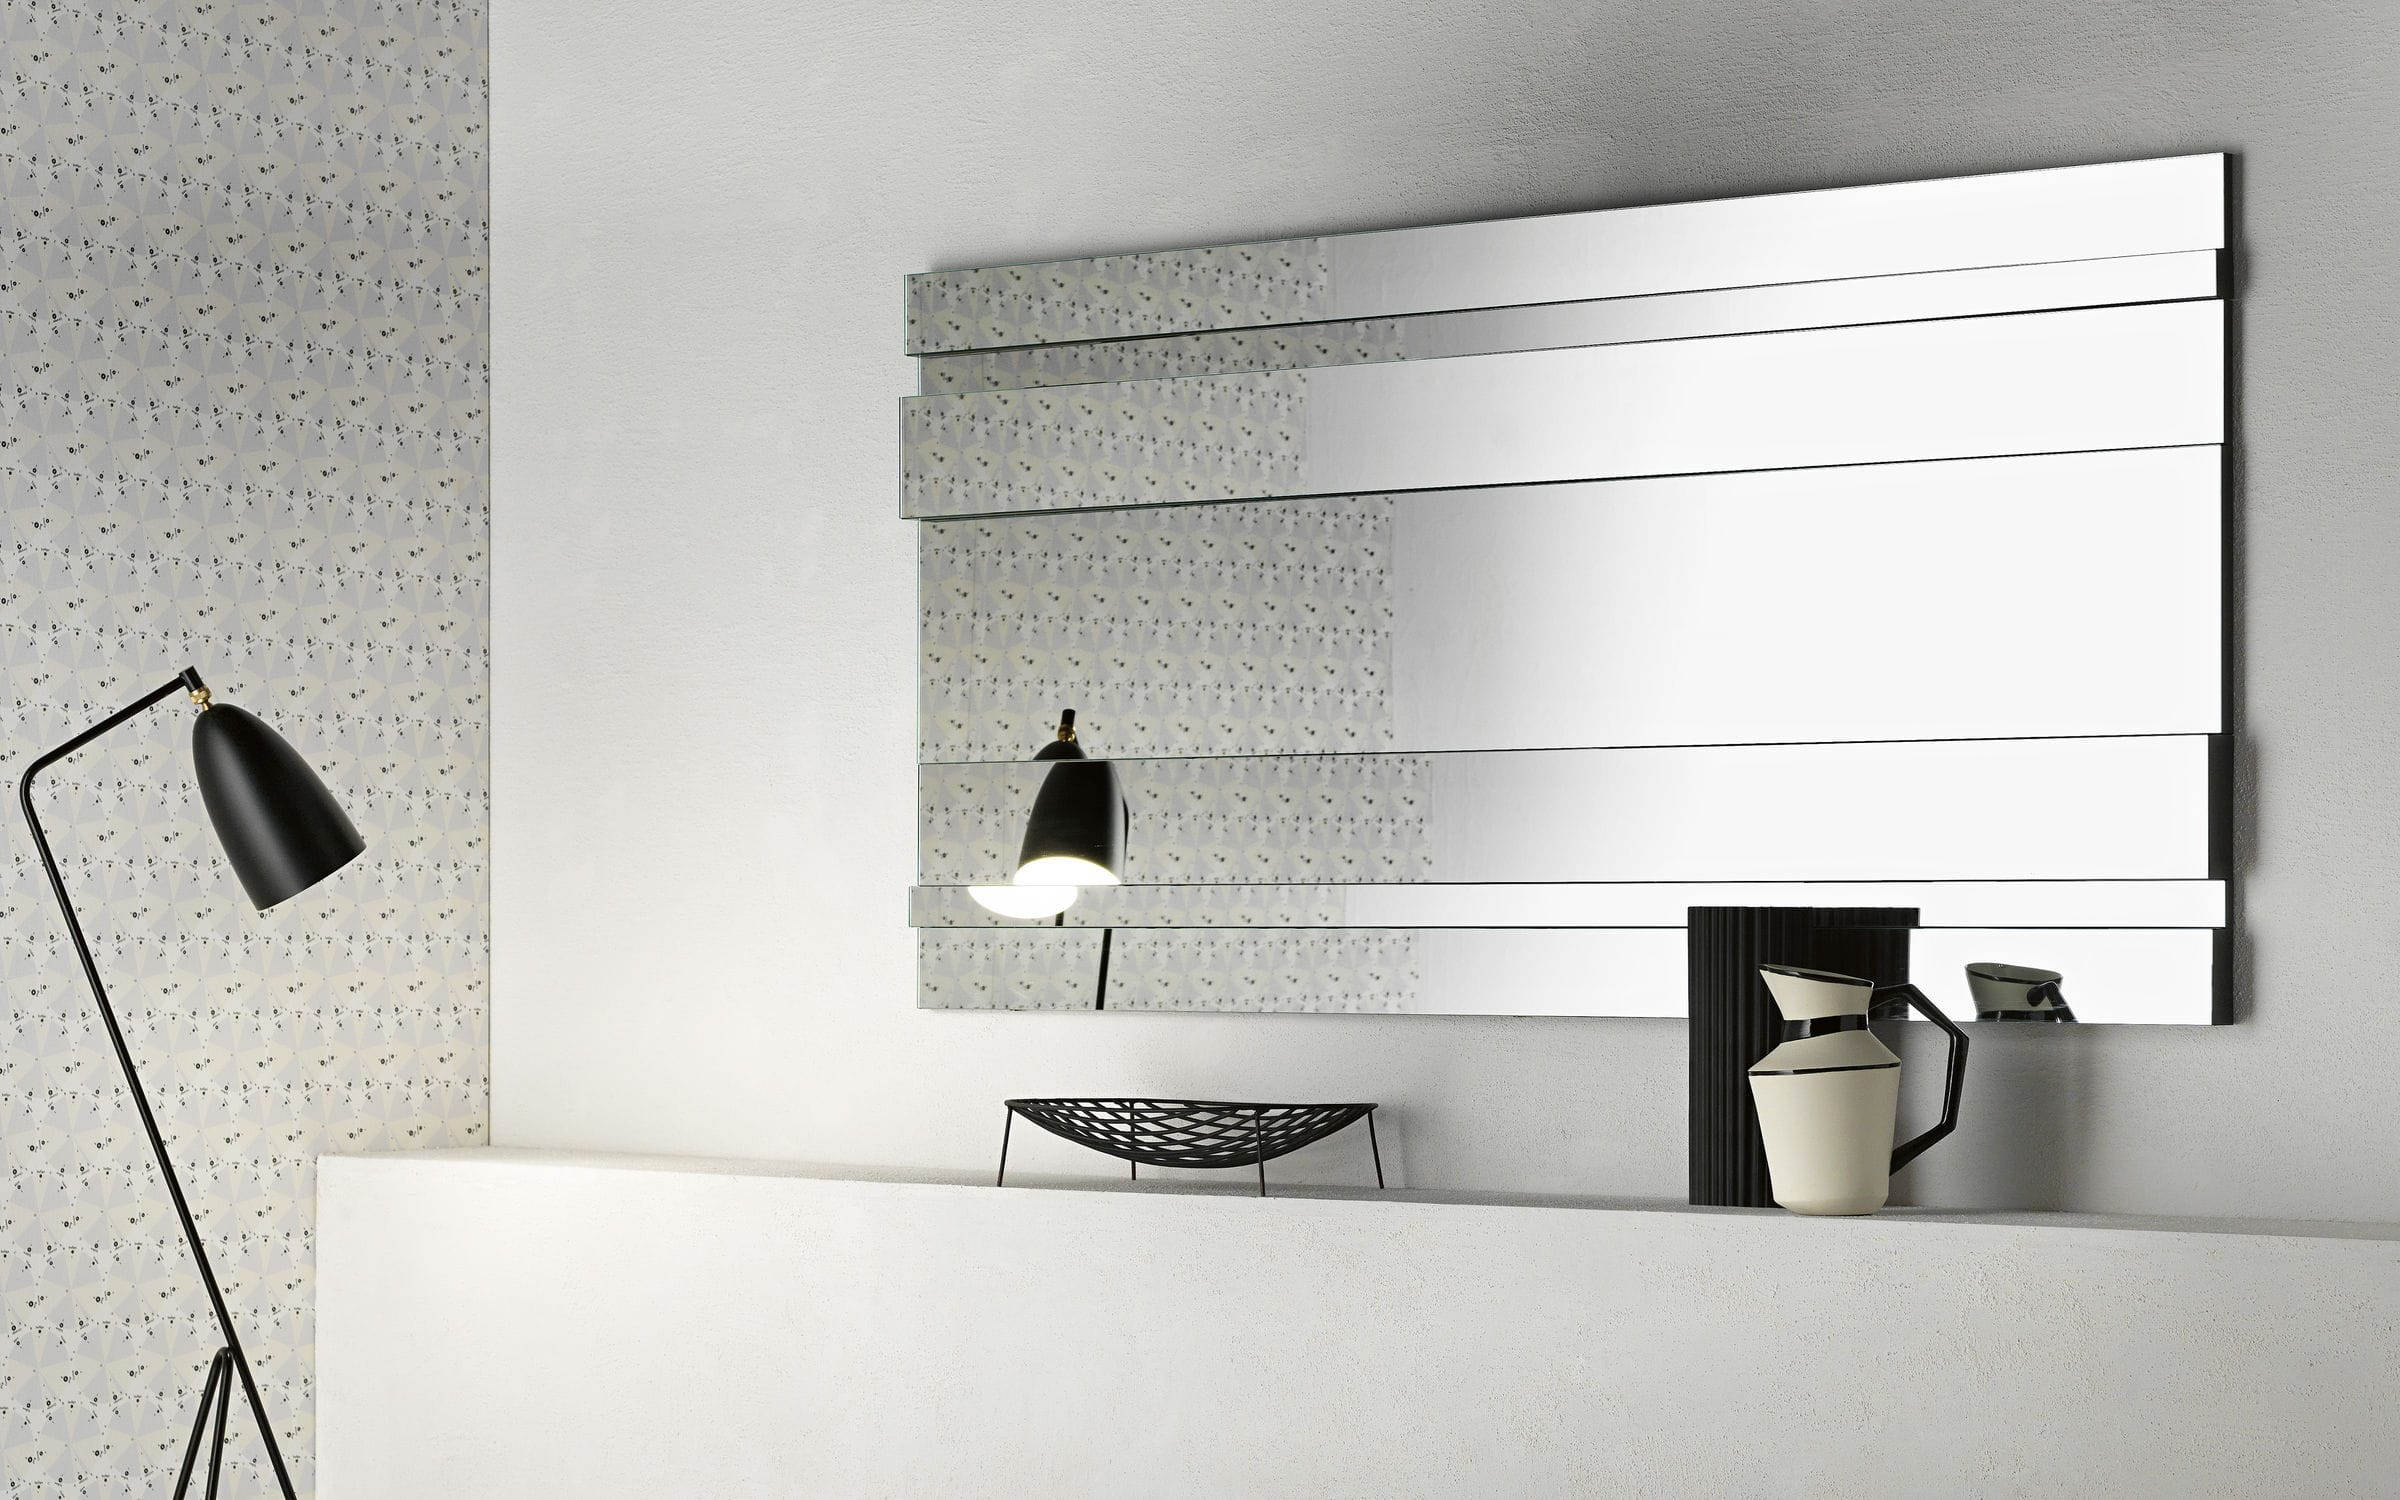 Miroir carre design id es de d coration int rieure for Miroir carre